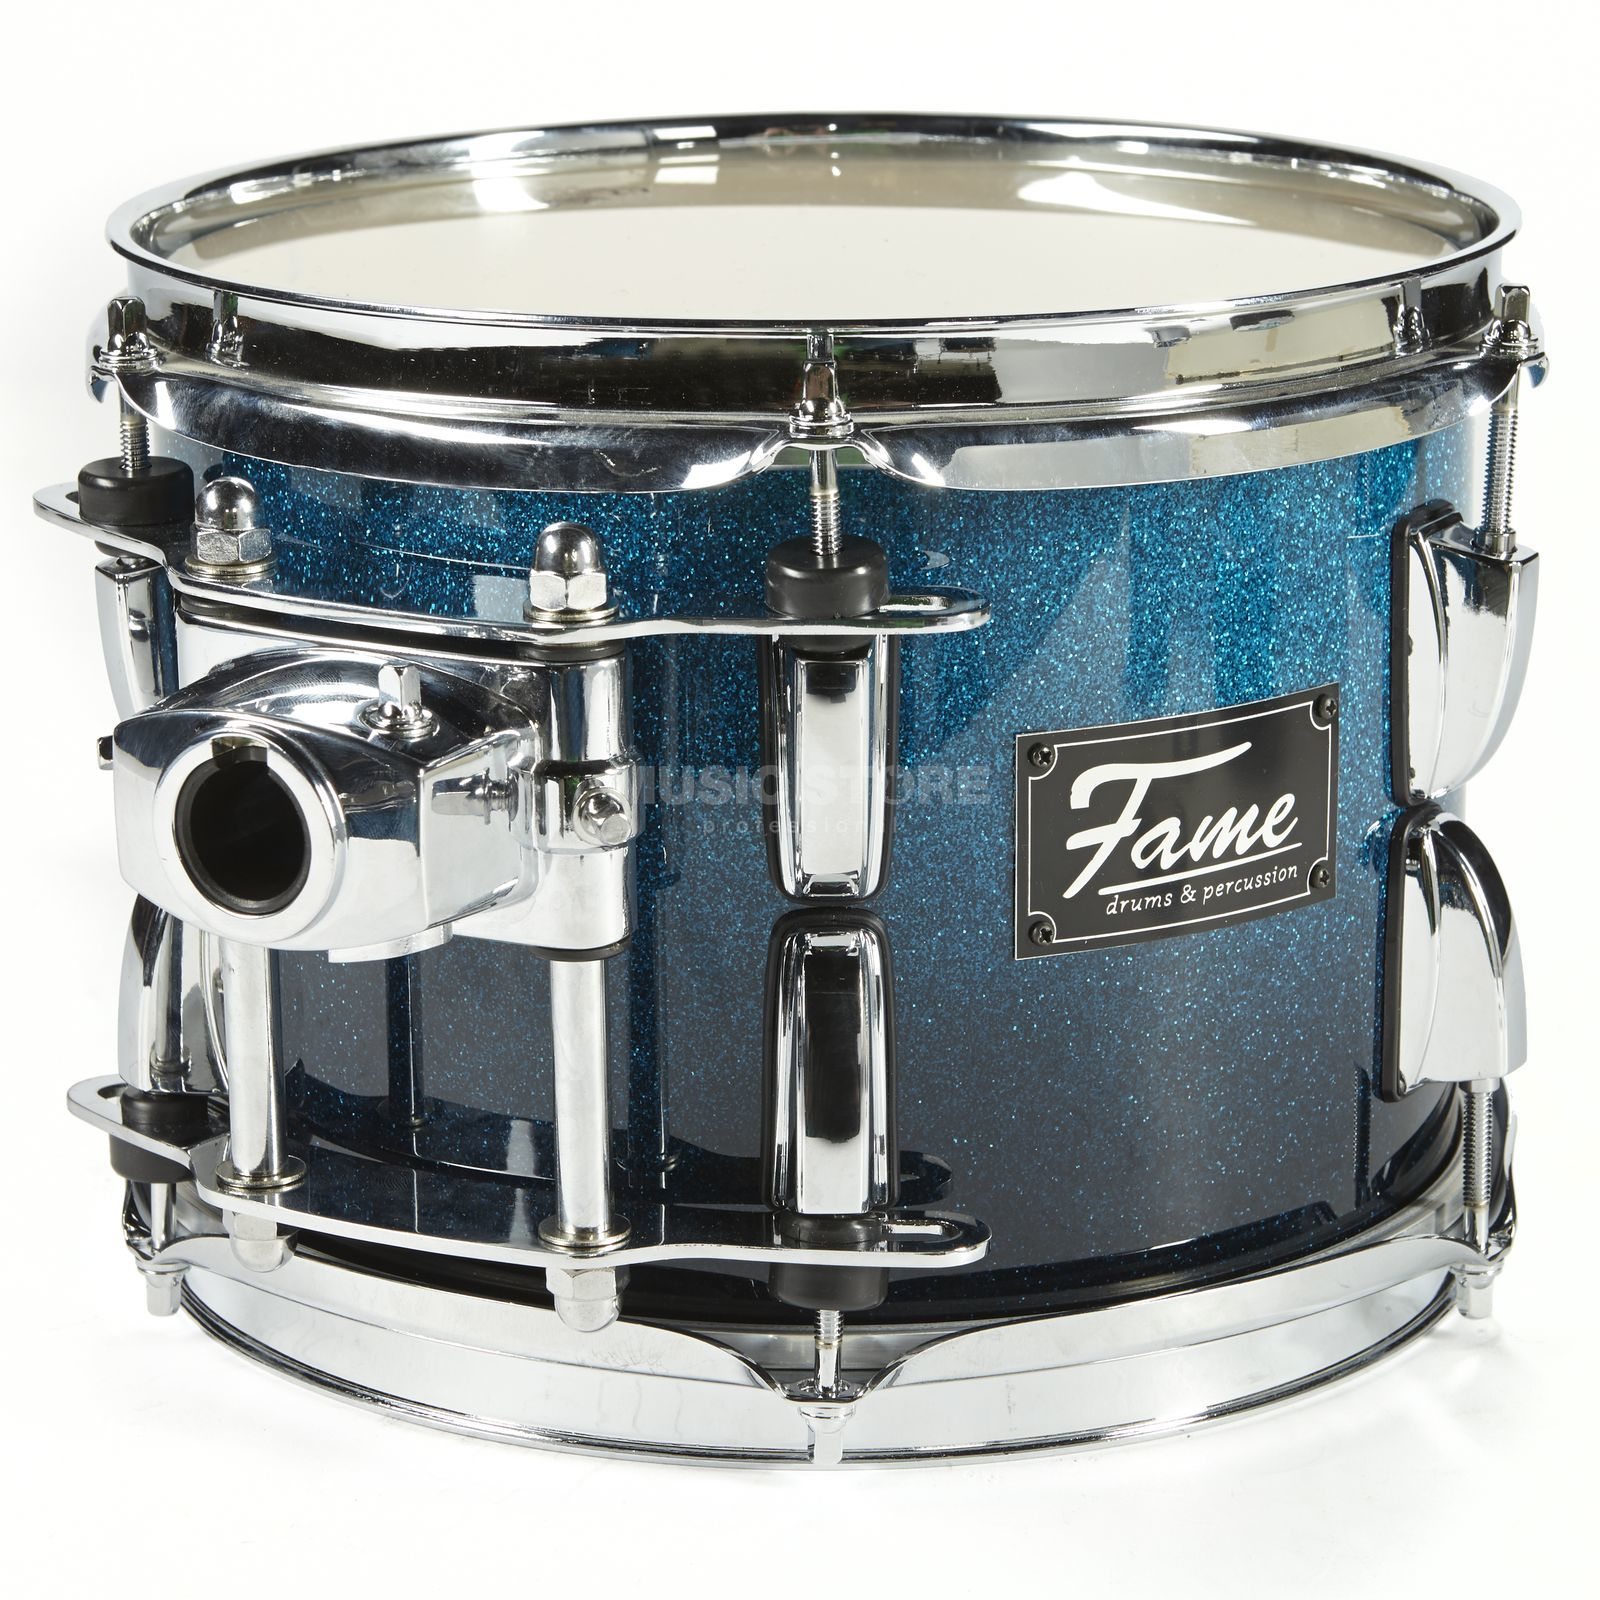 "Fame Fire Tom 12""x8"", #Blue Fade Sparkle Product Image"